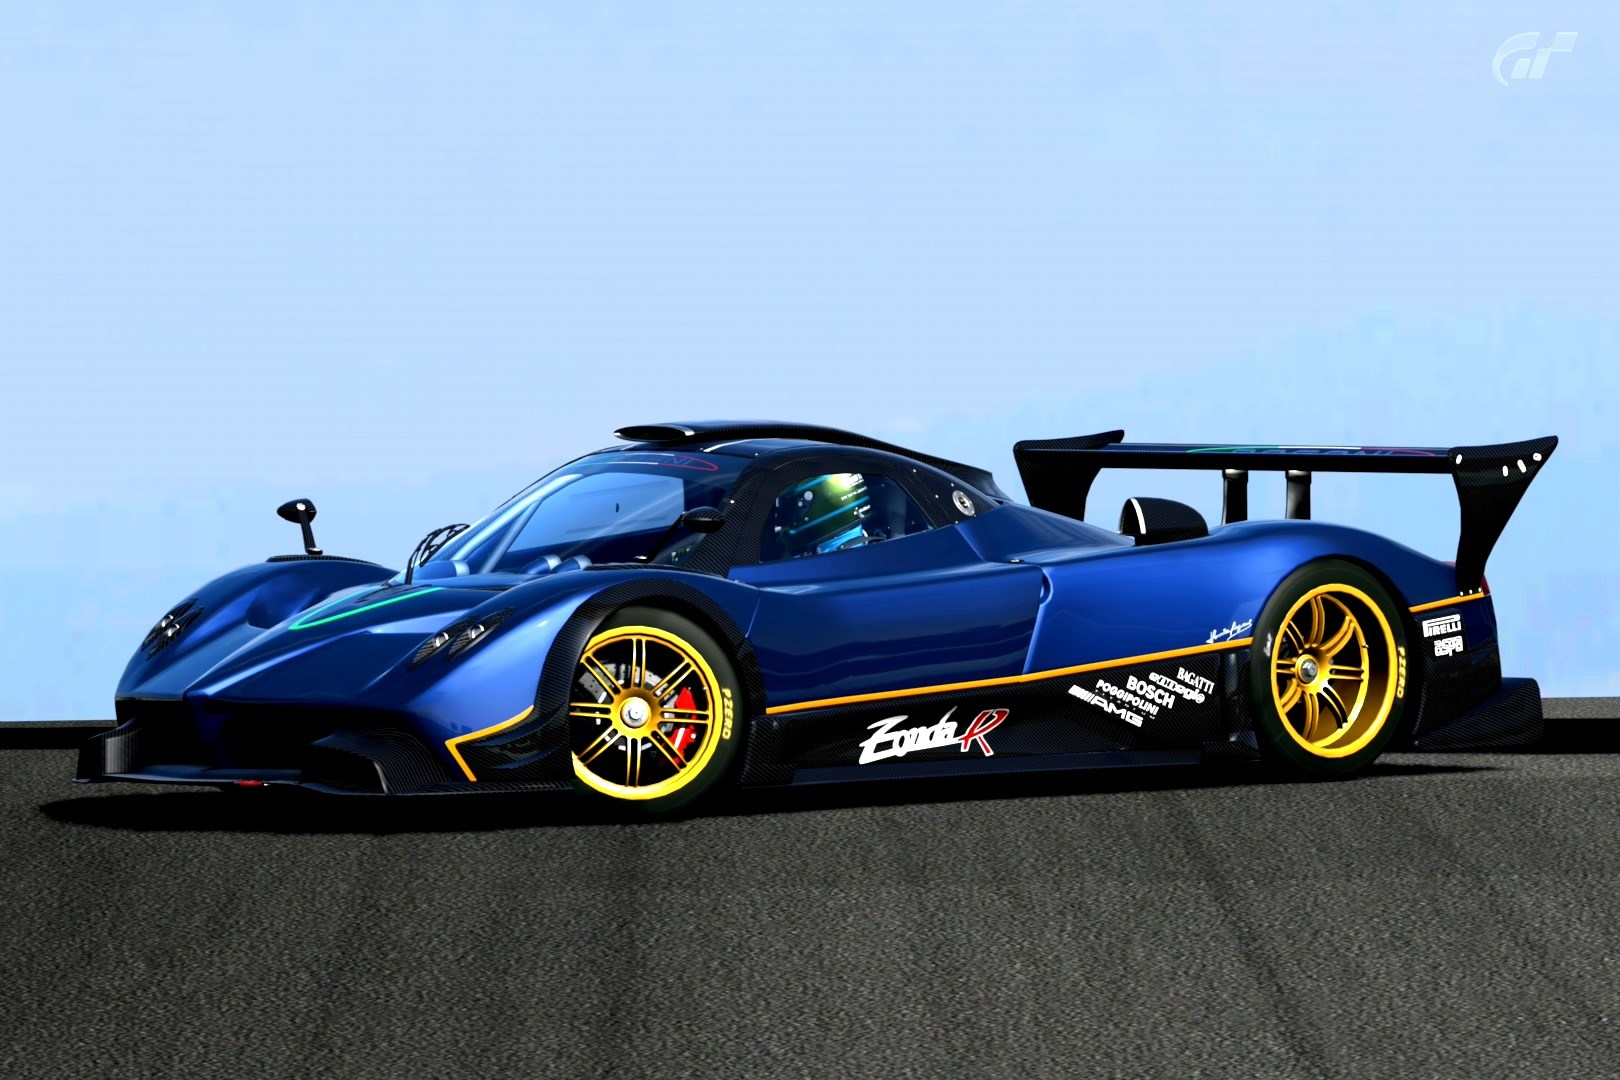 Pagani Zonda R Wallpapers Wallpapers All Superior Pagani Zonda R Wallpapers Backgrounds Wallpapersplanet Net